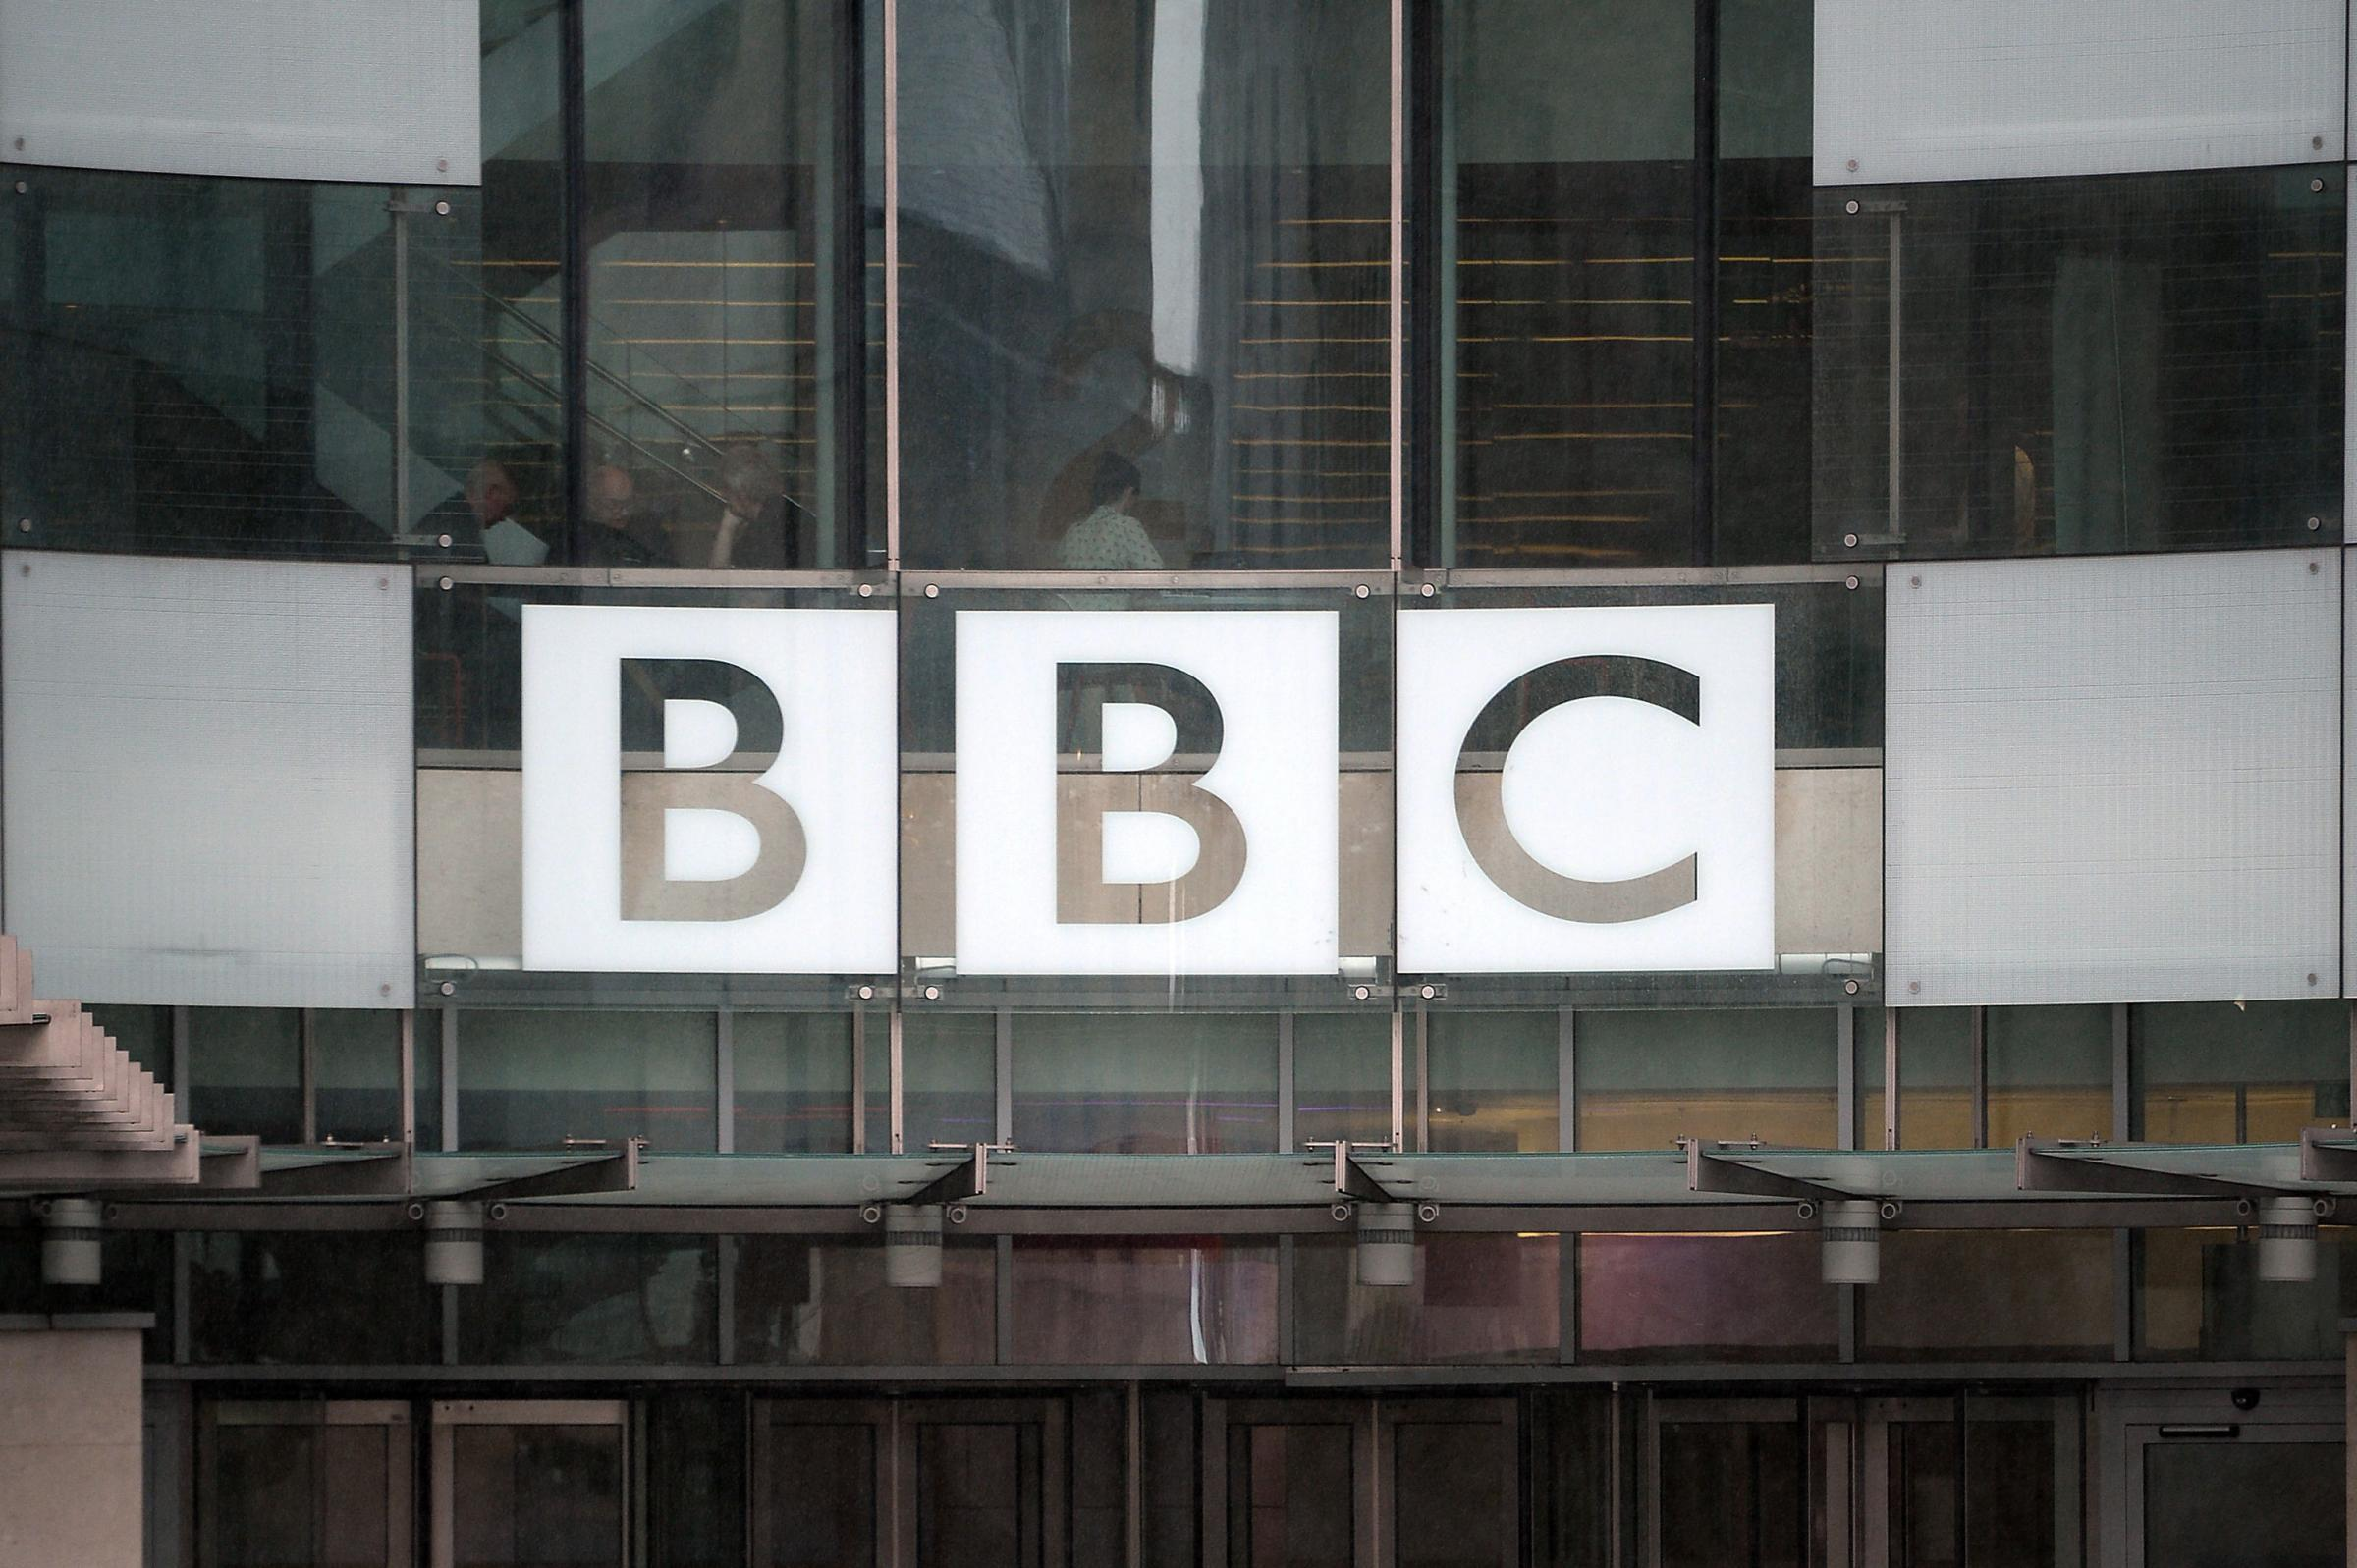 BBC goes ahead with plan to end free TV licence for over-75s - national scot